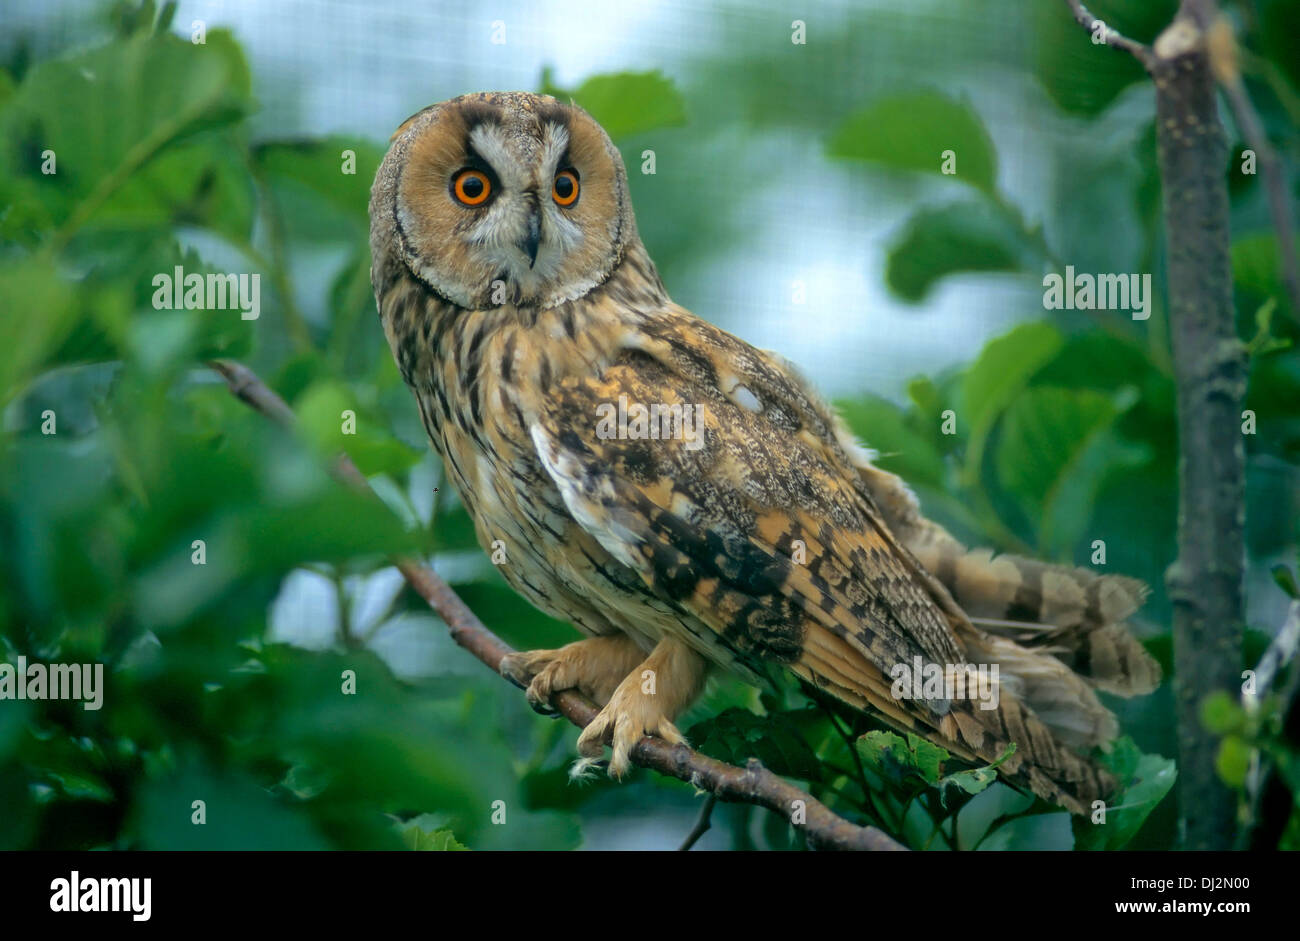 Waldohreule (Asio otus), Long-eared Owl - Asio otus (Strix otus) Stock Photo